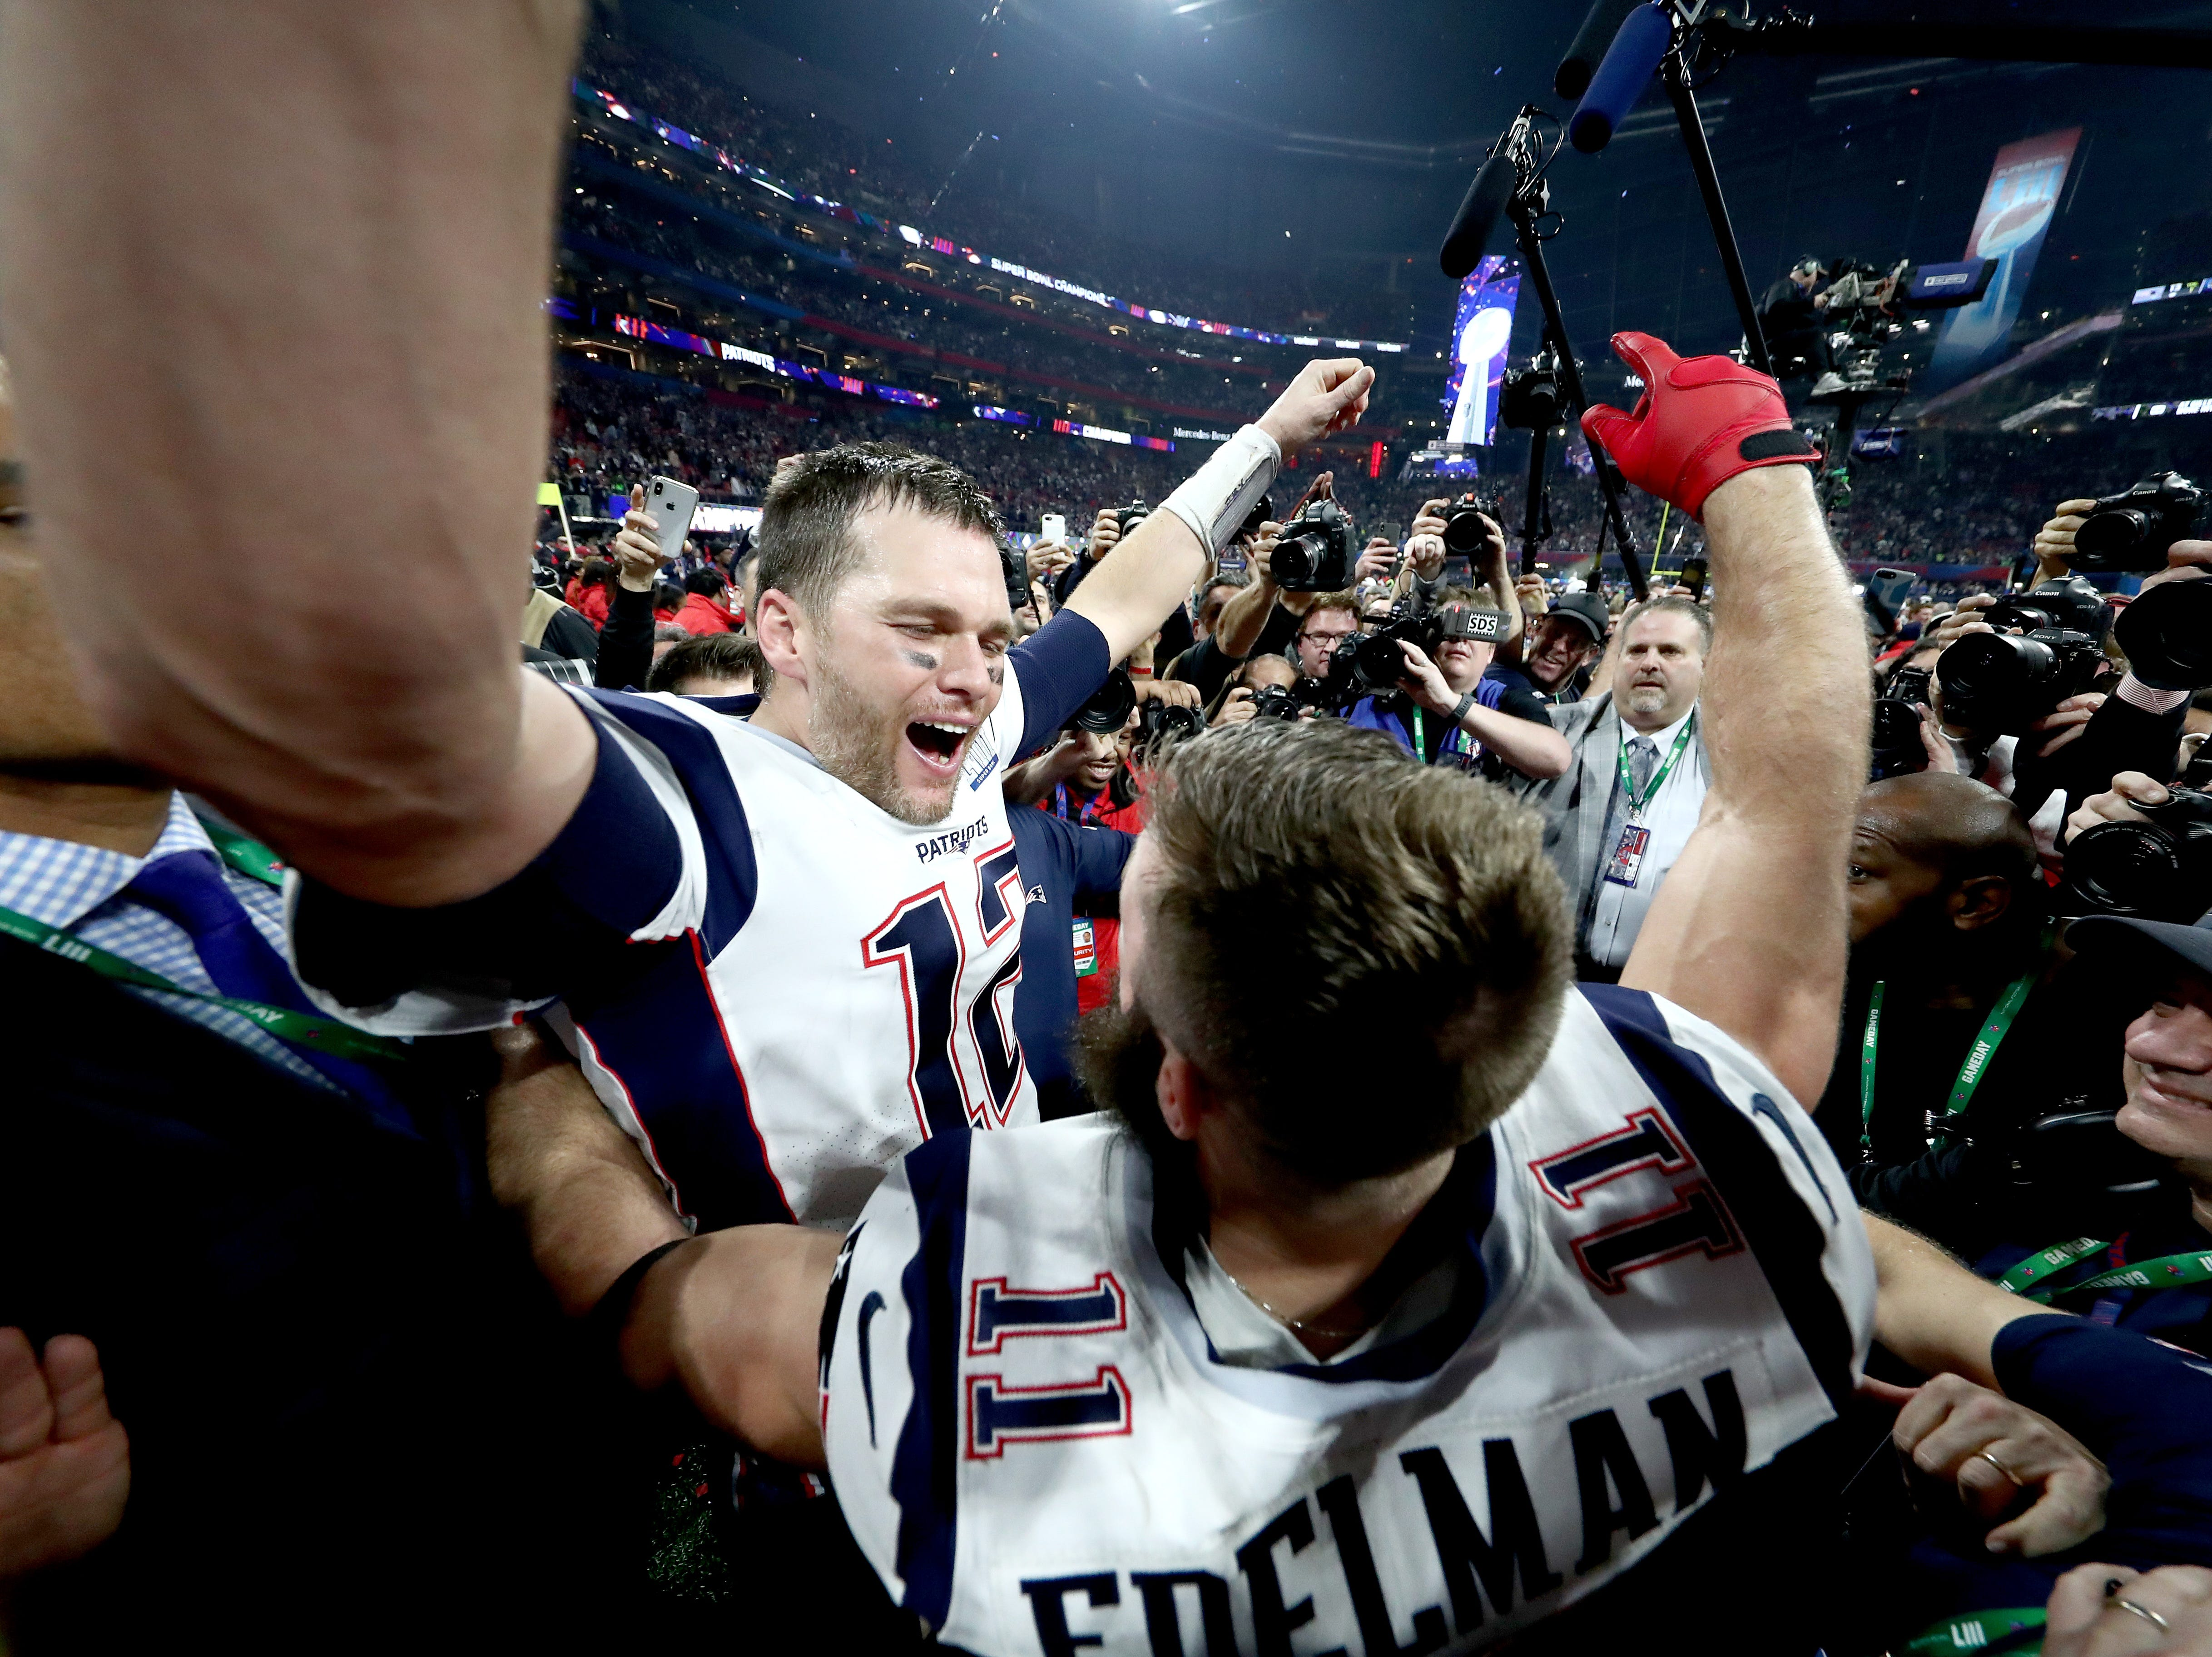 Tom Brady of the New England Patriots and Julian Edelman #11 celebrate their teams 13-3 win over the Los Angeles Rams.